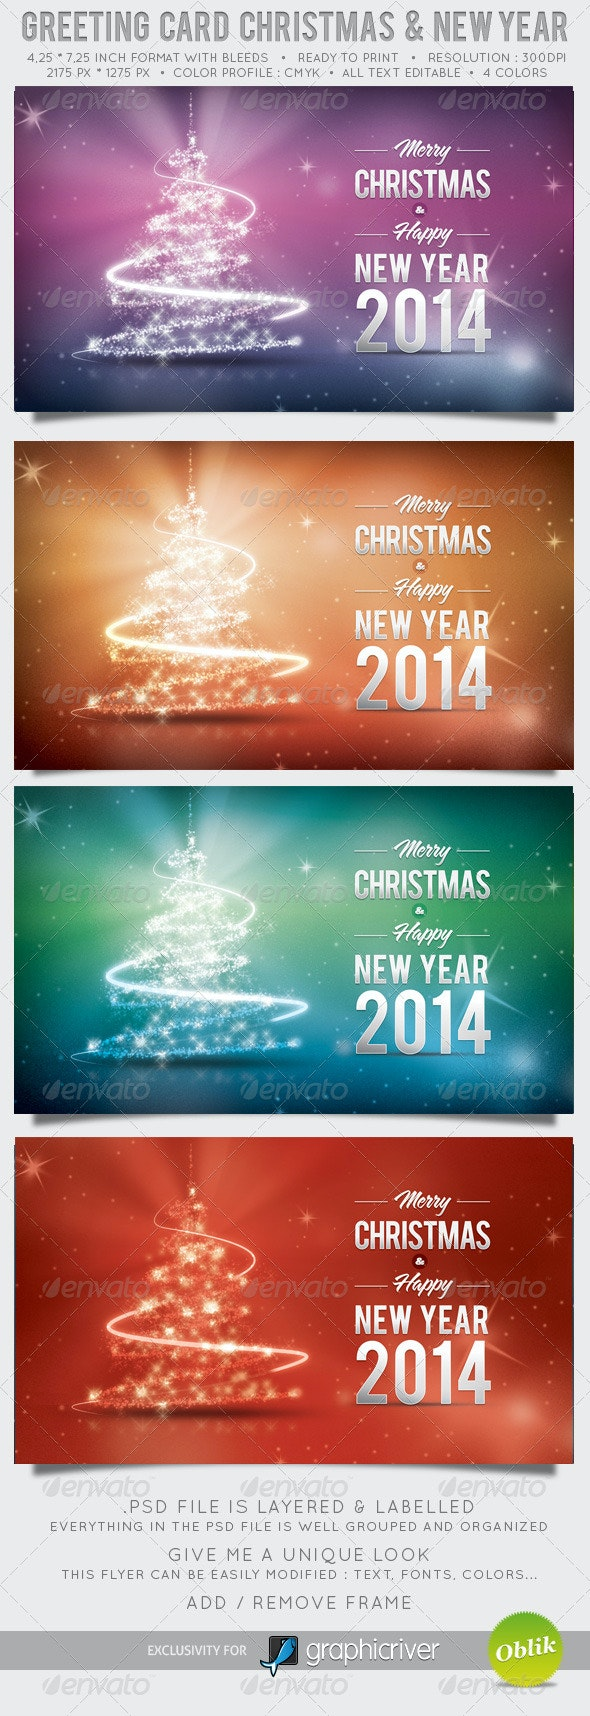 Greeting Card Christmas and New Year - Holiday Greeting Cards